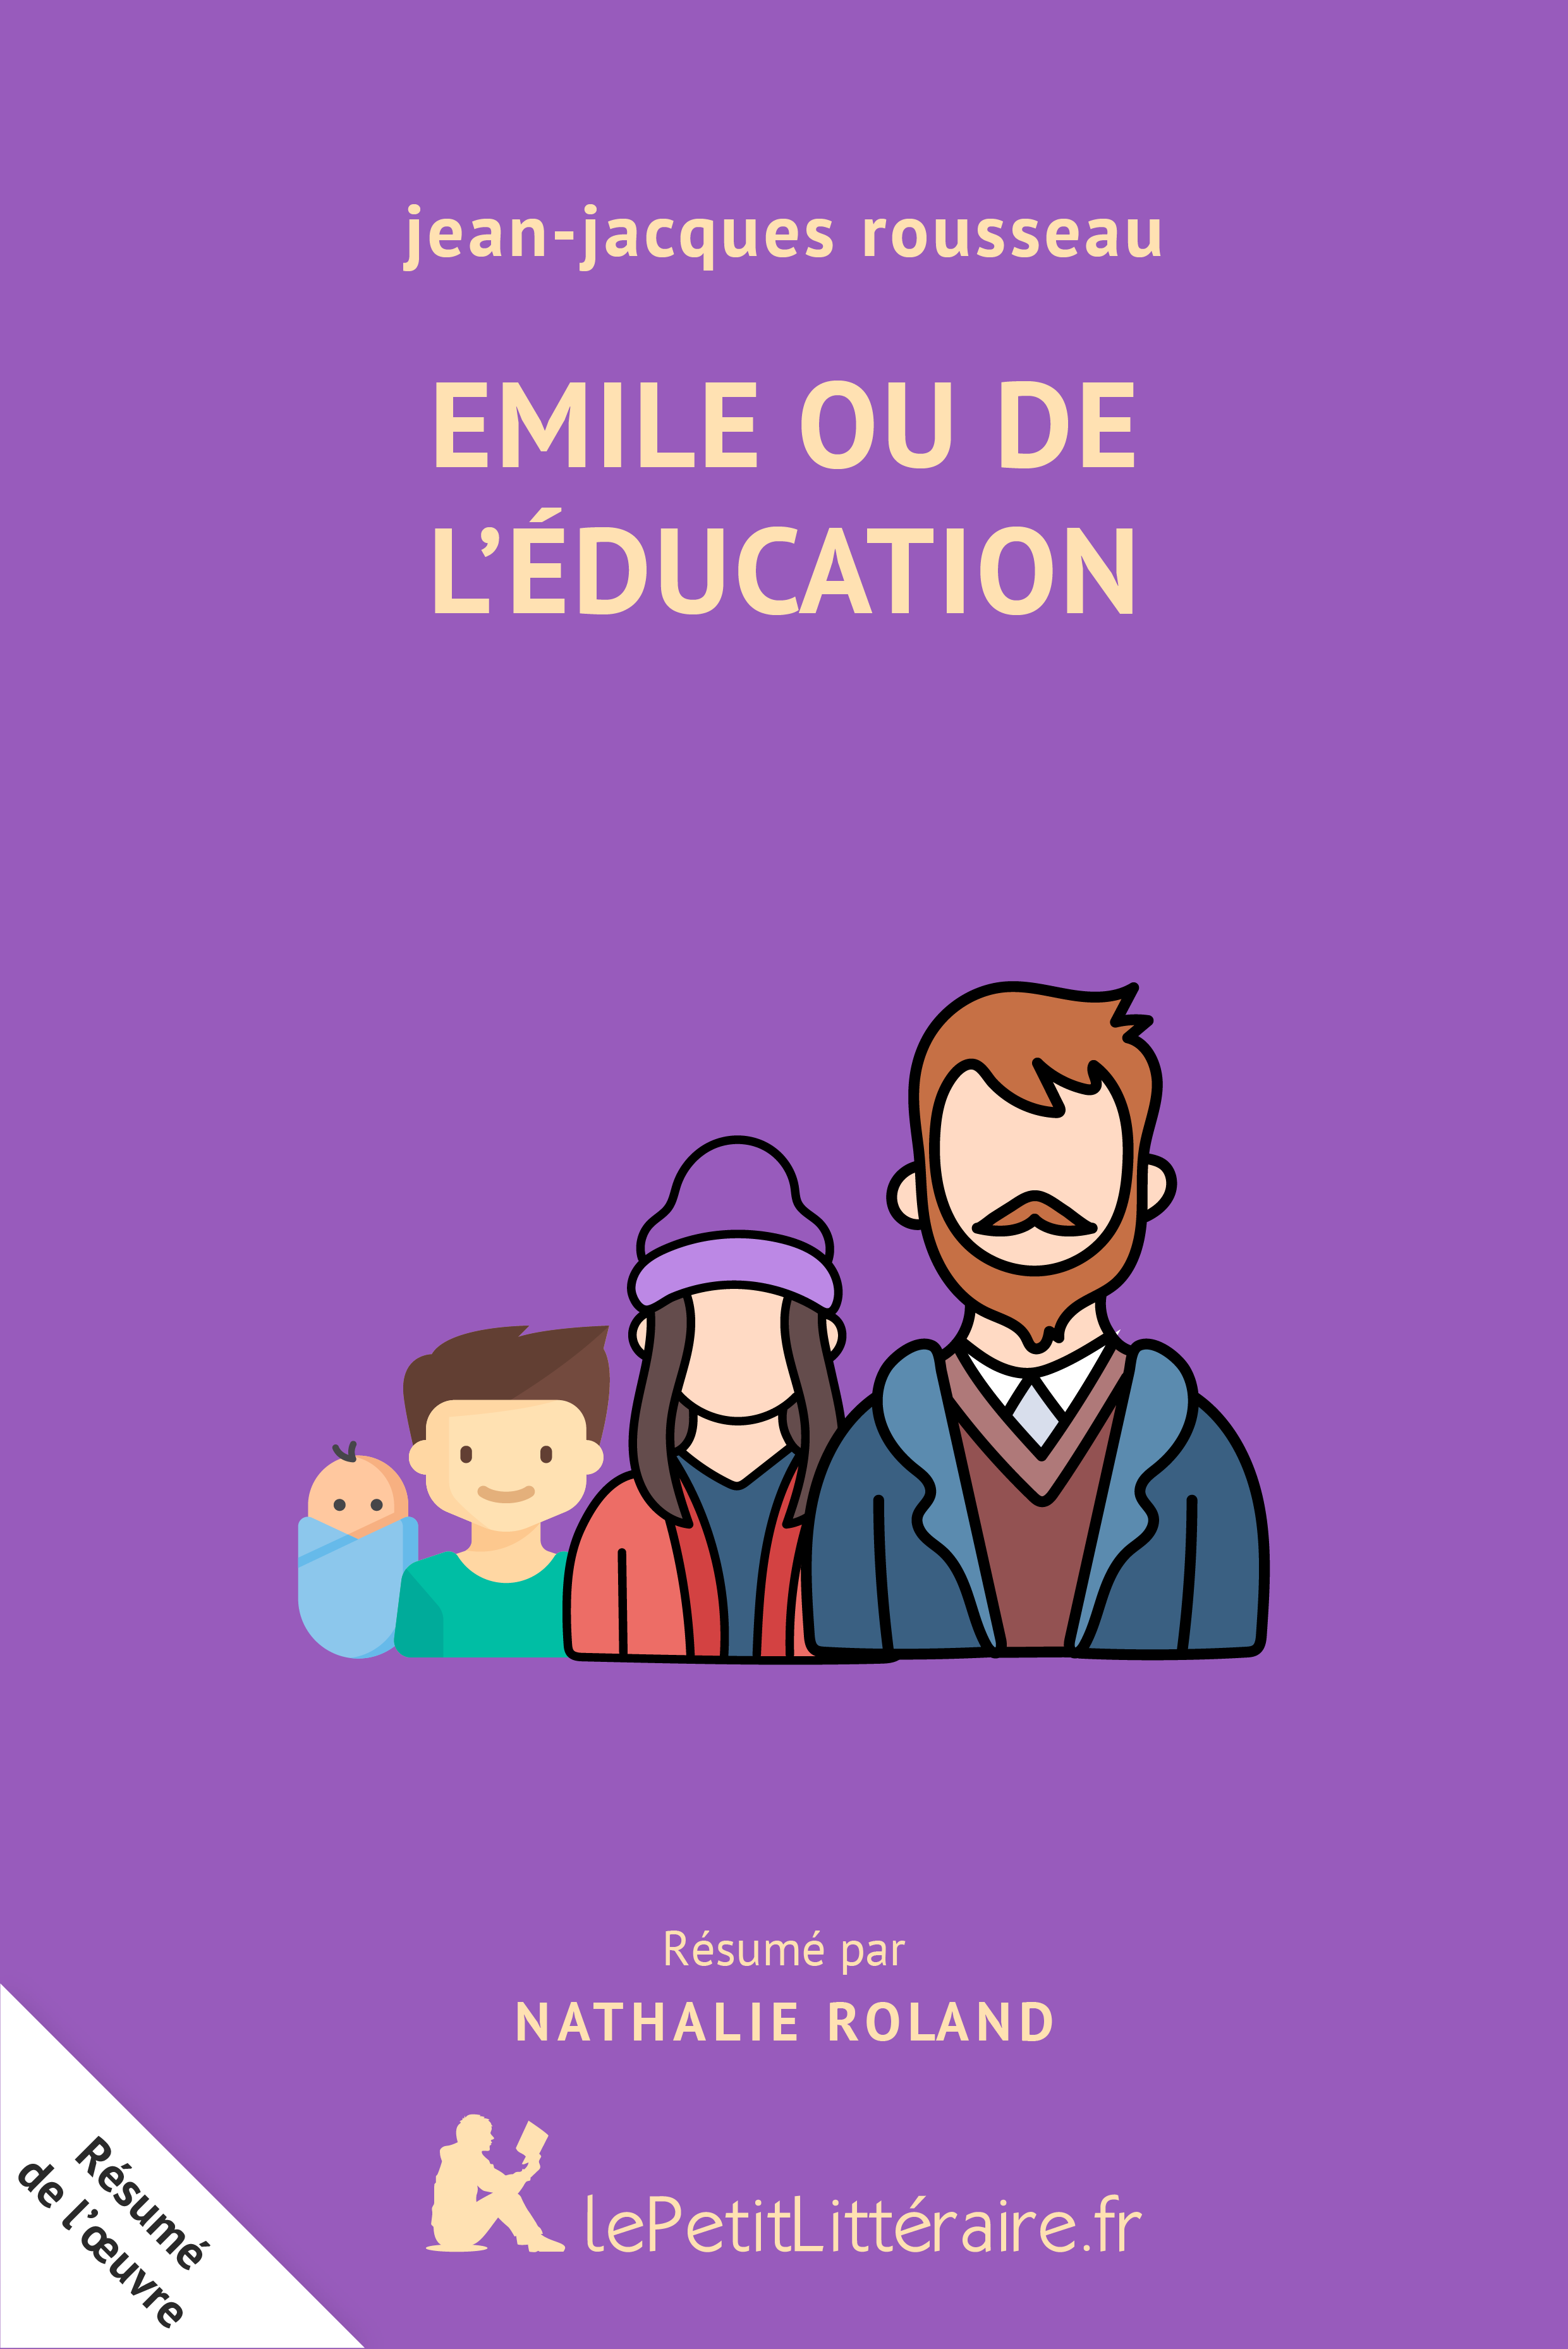 Lepetitlitteraire Fr Emile Ou De L Education Resume Du Livre